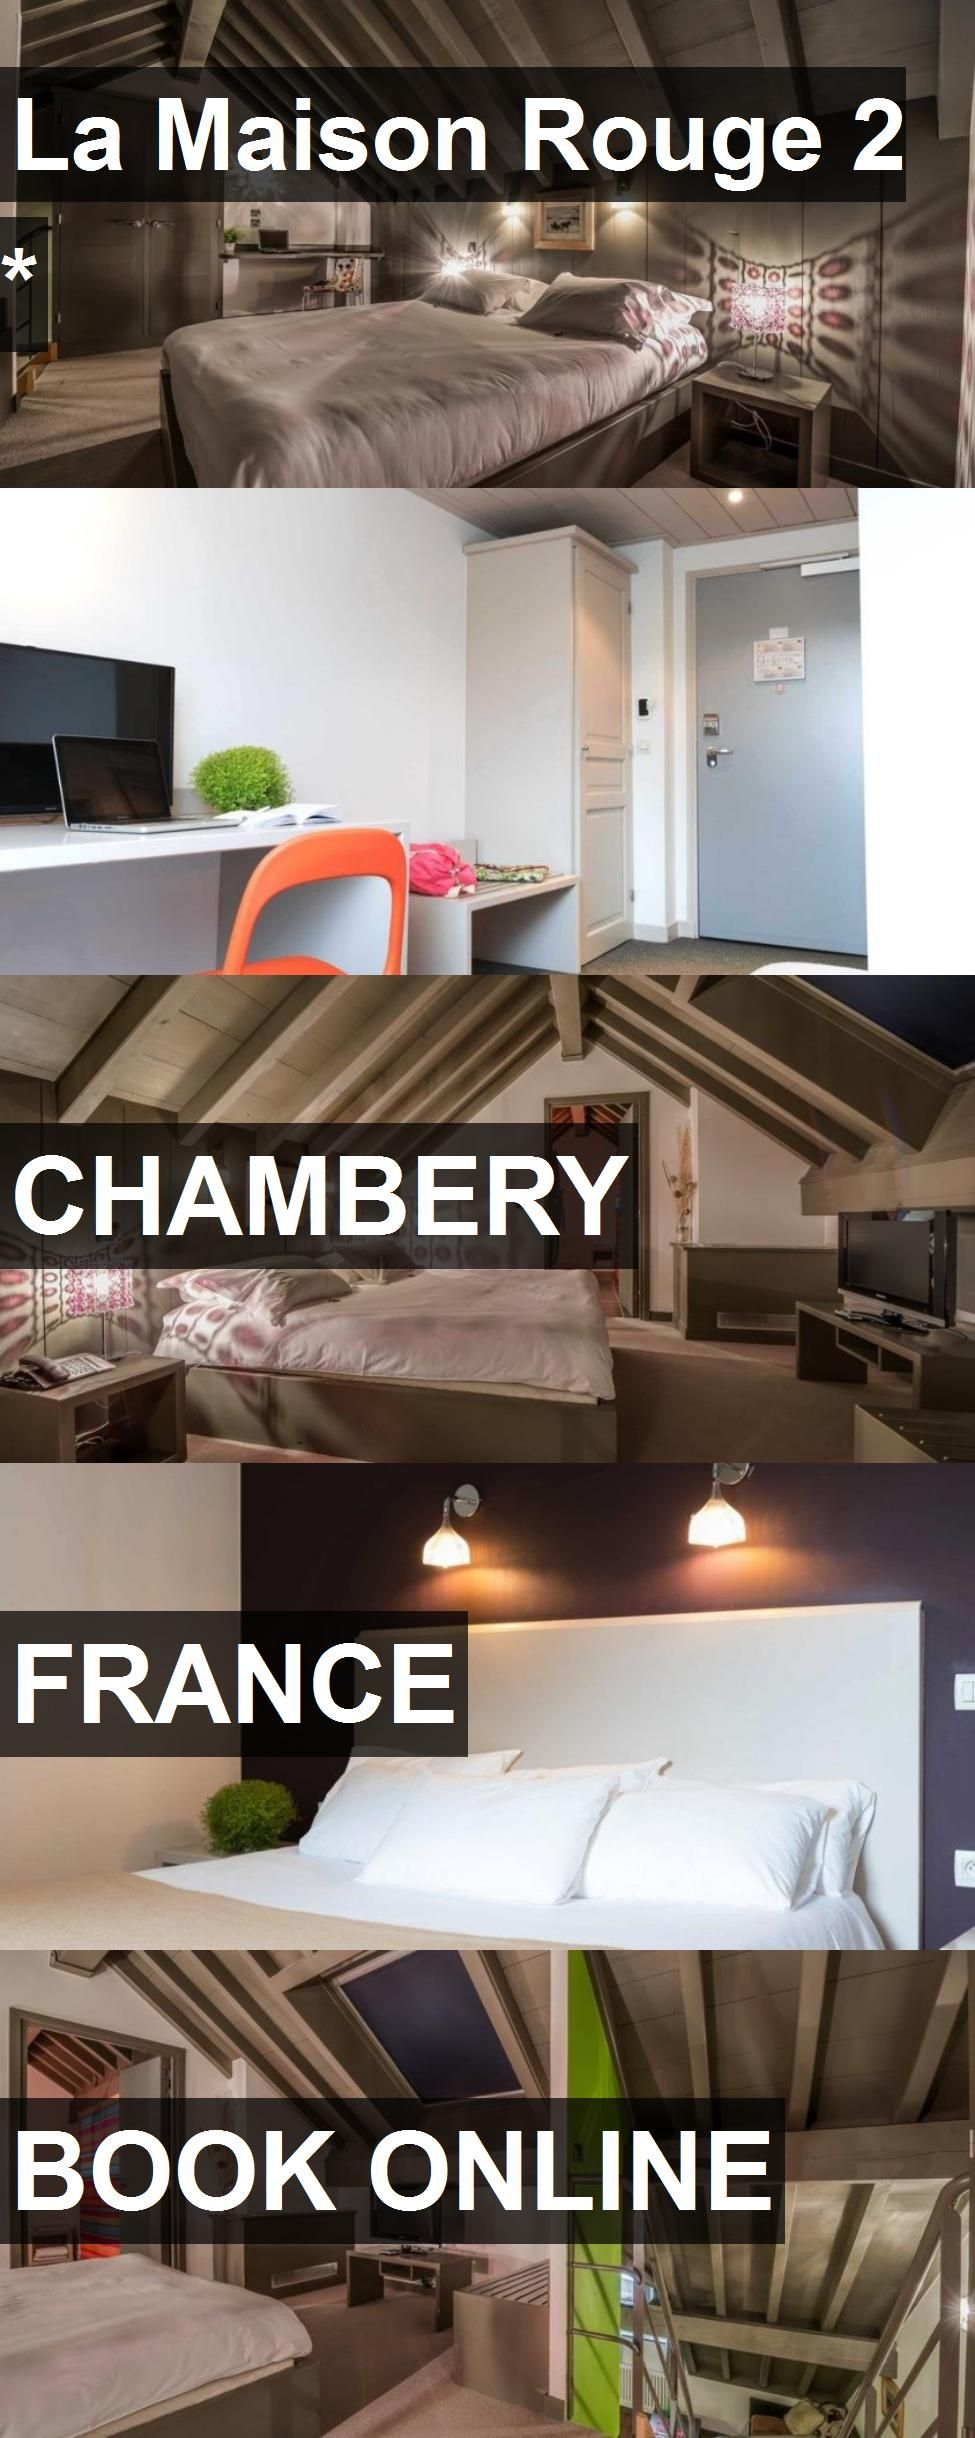 Hotel La Maison Rouge 2 * in Chambery, France. For more information, photos, reviews and best ...